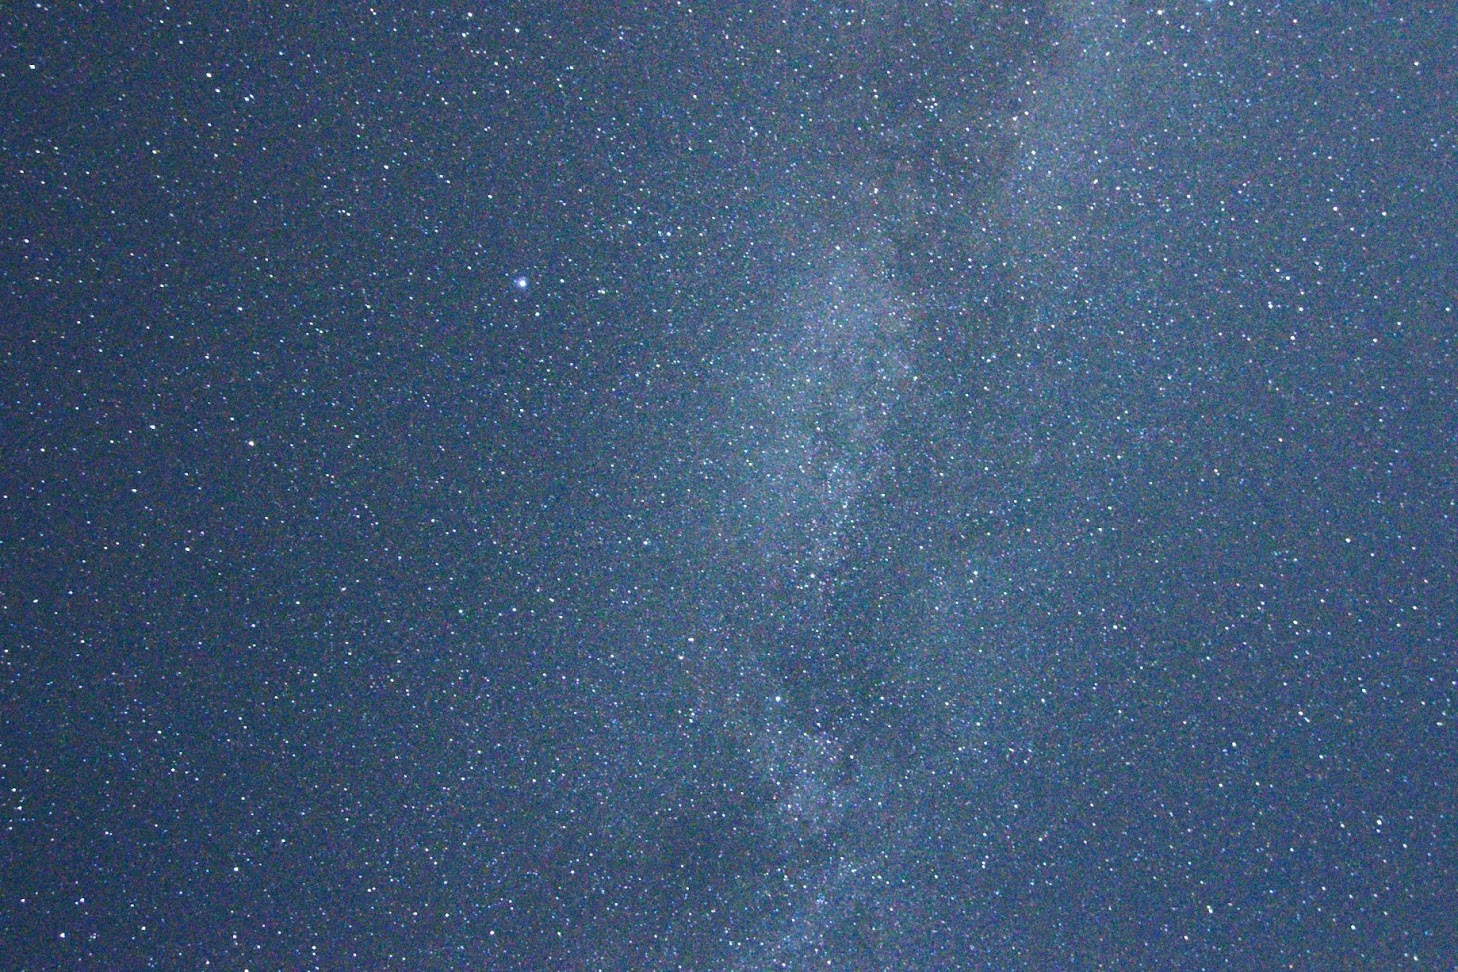 Summer Triangle with Nikon D90 and Tokina AT-X 116 PRO DX